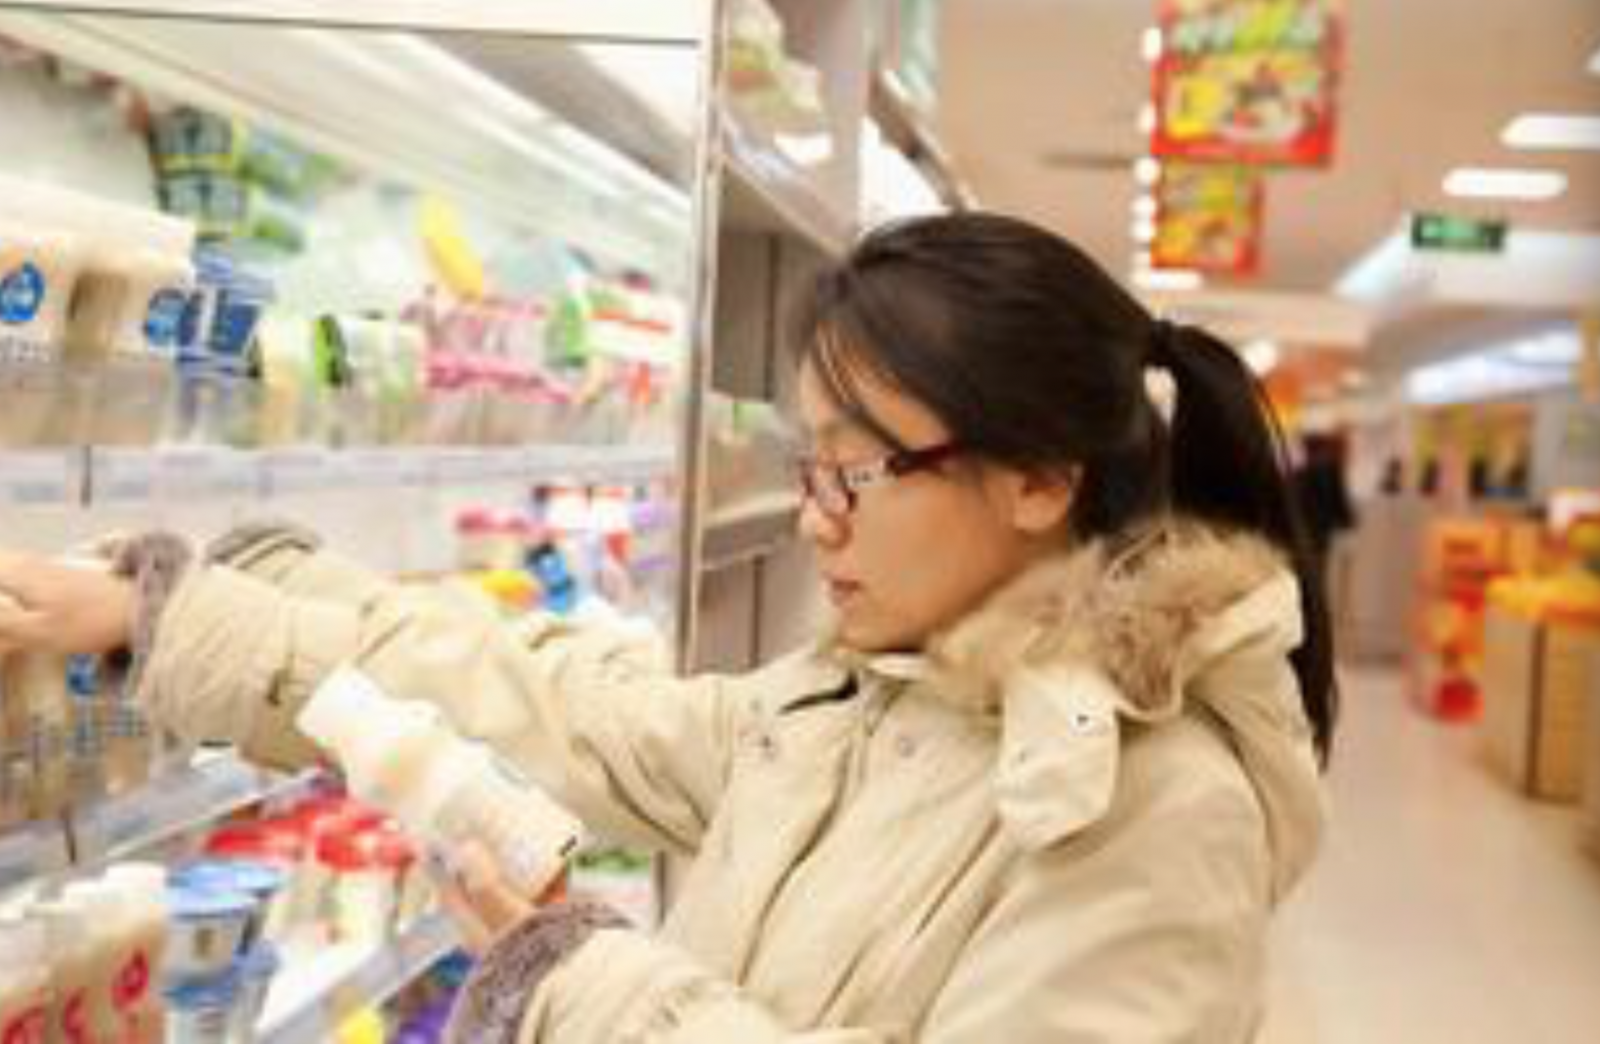 Fig. 3: Women shopping in the supermarket. From: image.baidu.com